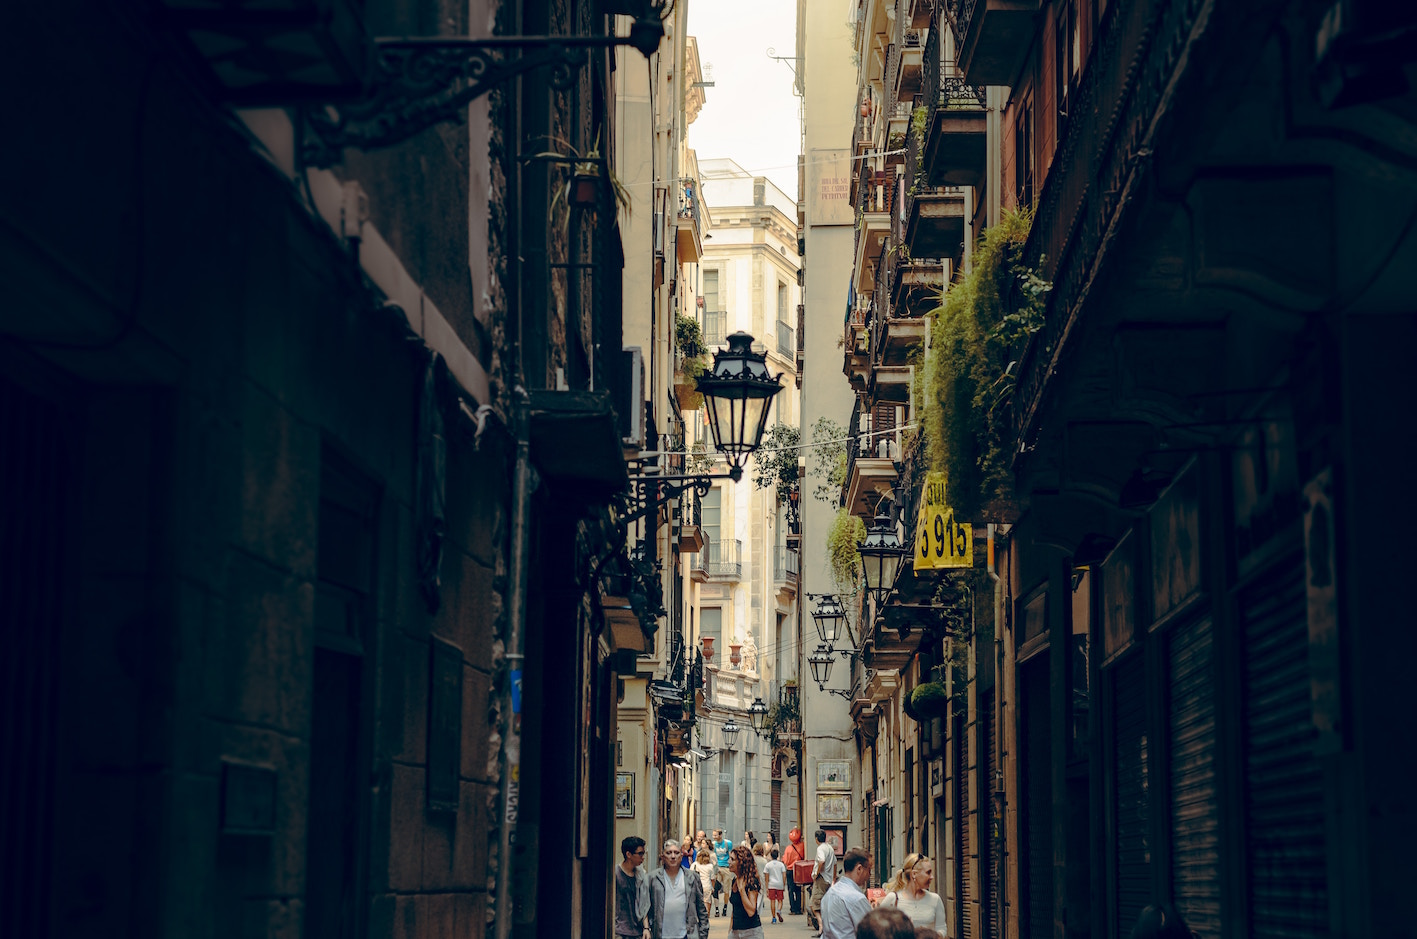 A narrow street in Barcelona with people in the distance